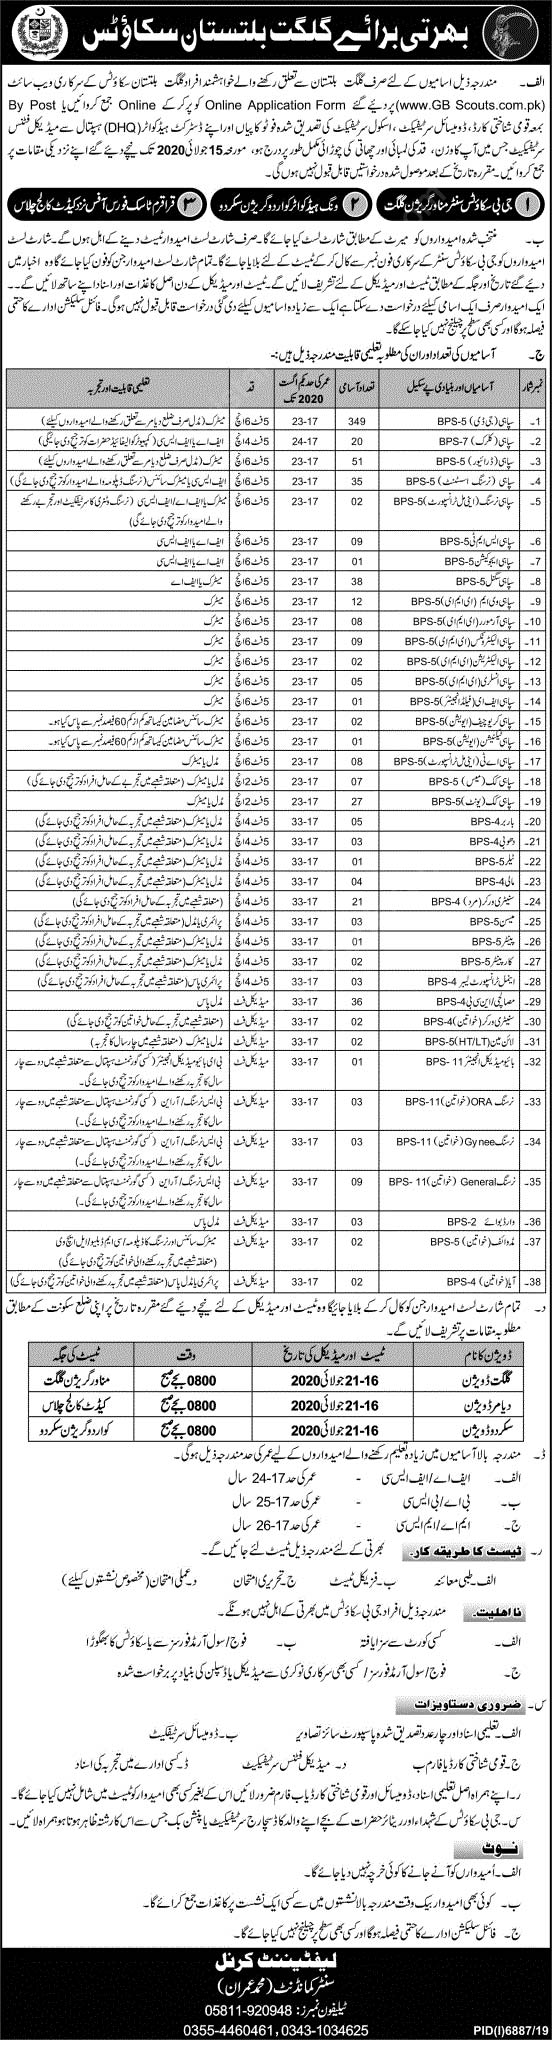 Gilgit Baltistan Scouts Jobs 2020 Latest Application Form Gd Sipahi, Drivers & Others